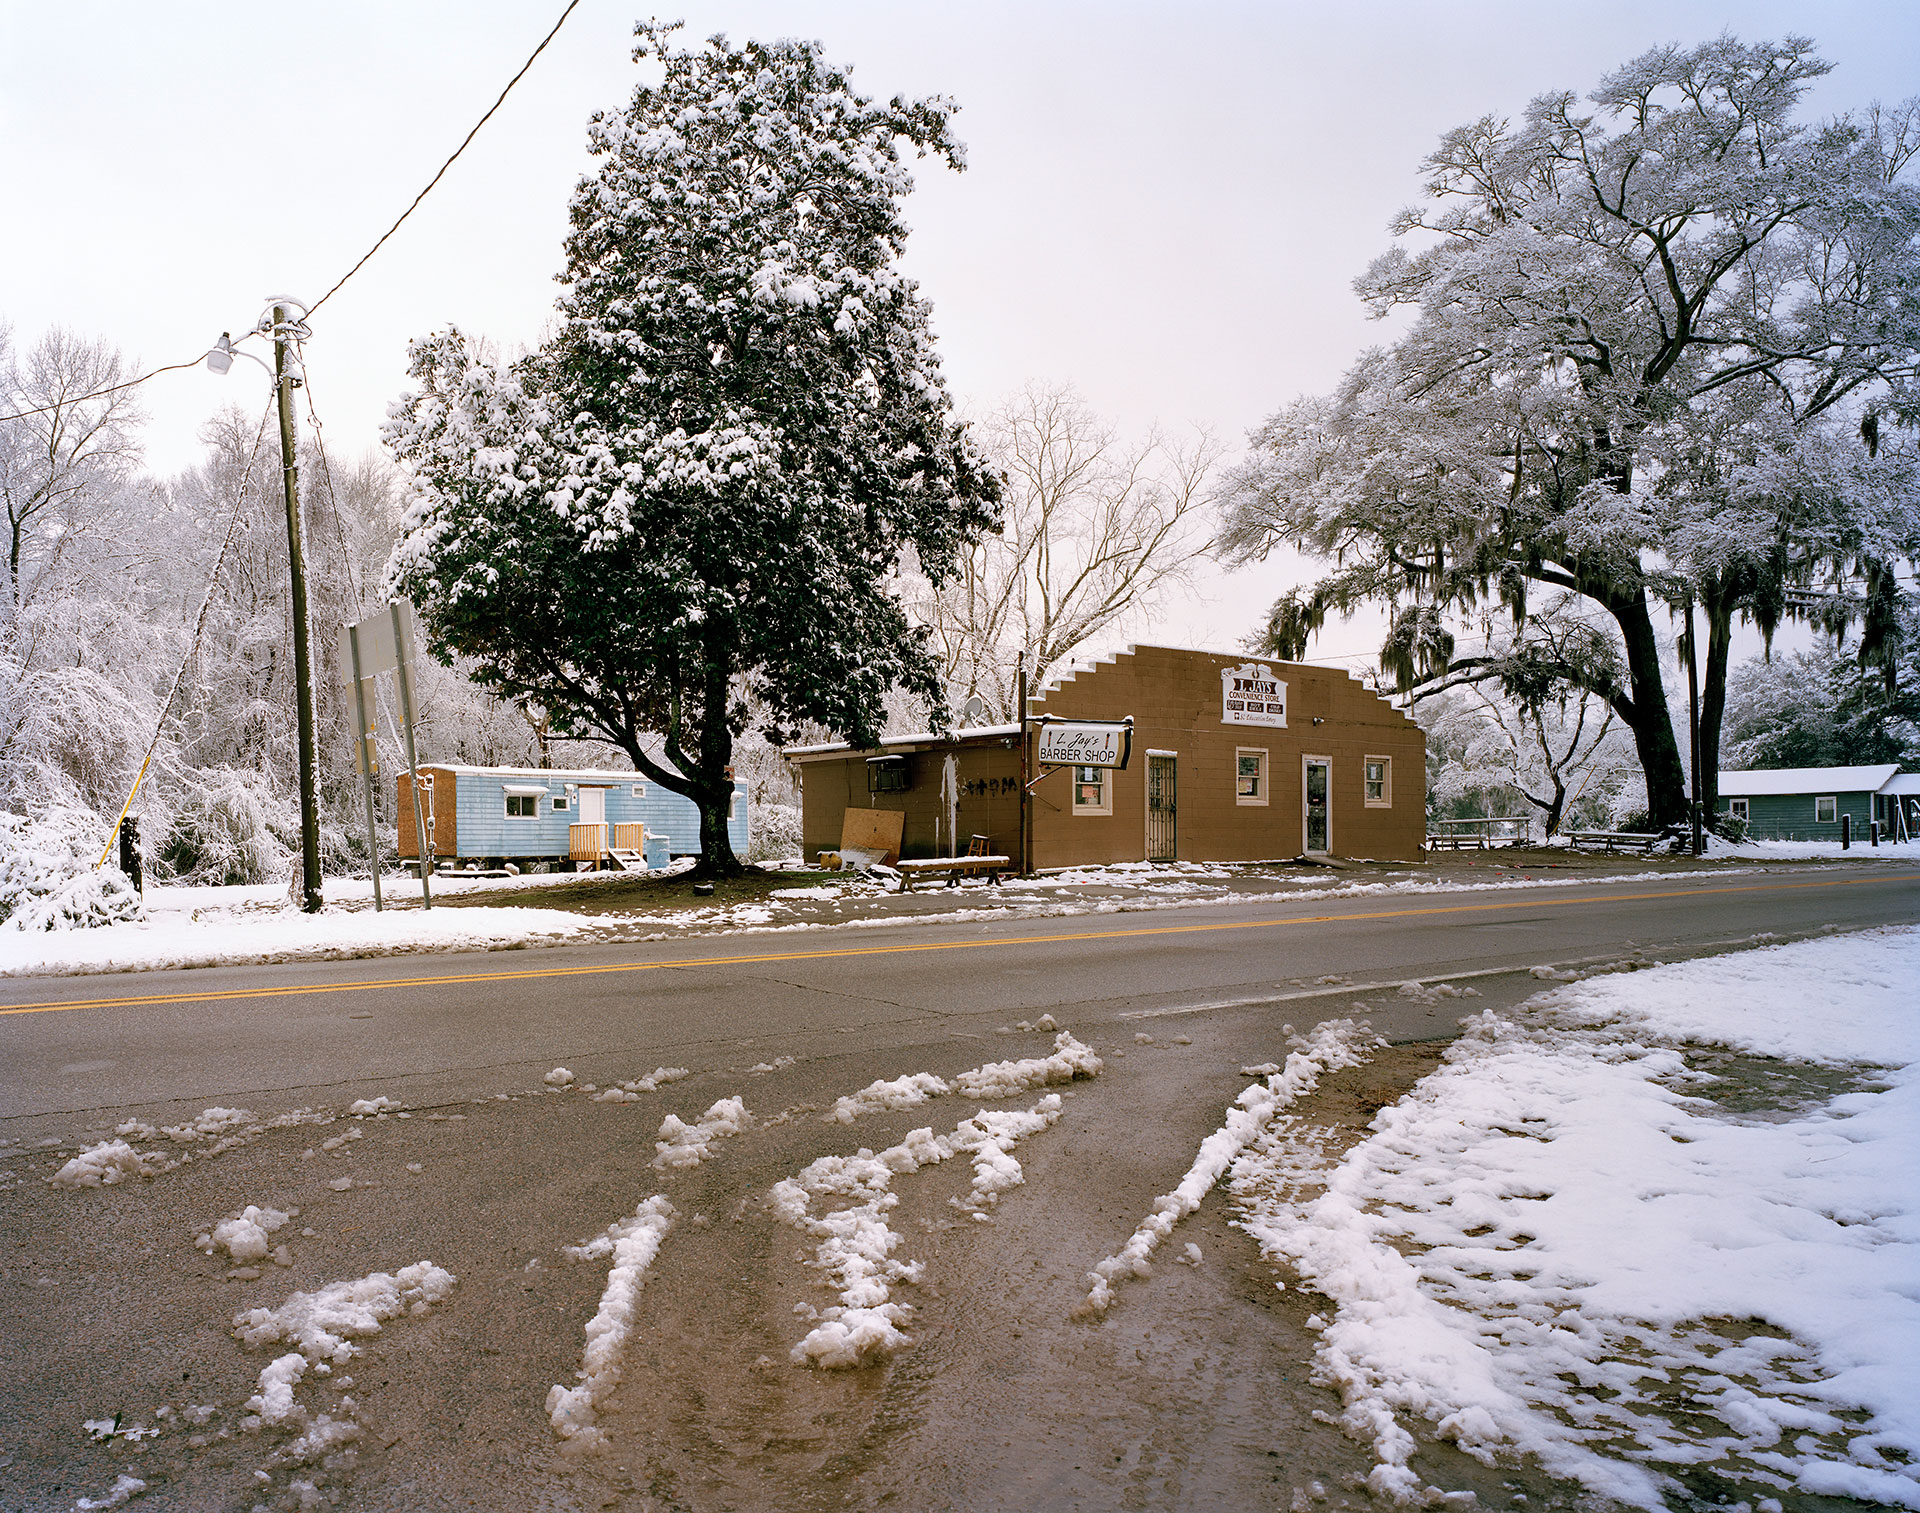 L. Jay's Barber Shop and Convenience Store, Highway 174